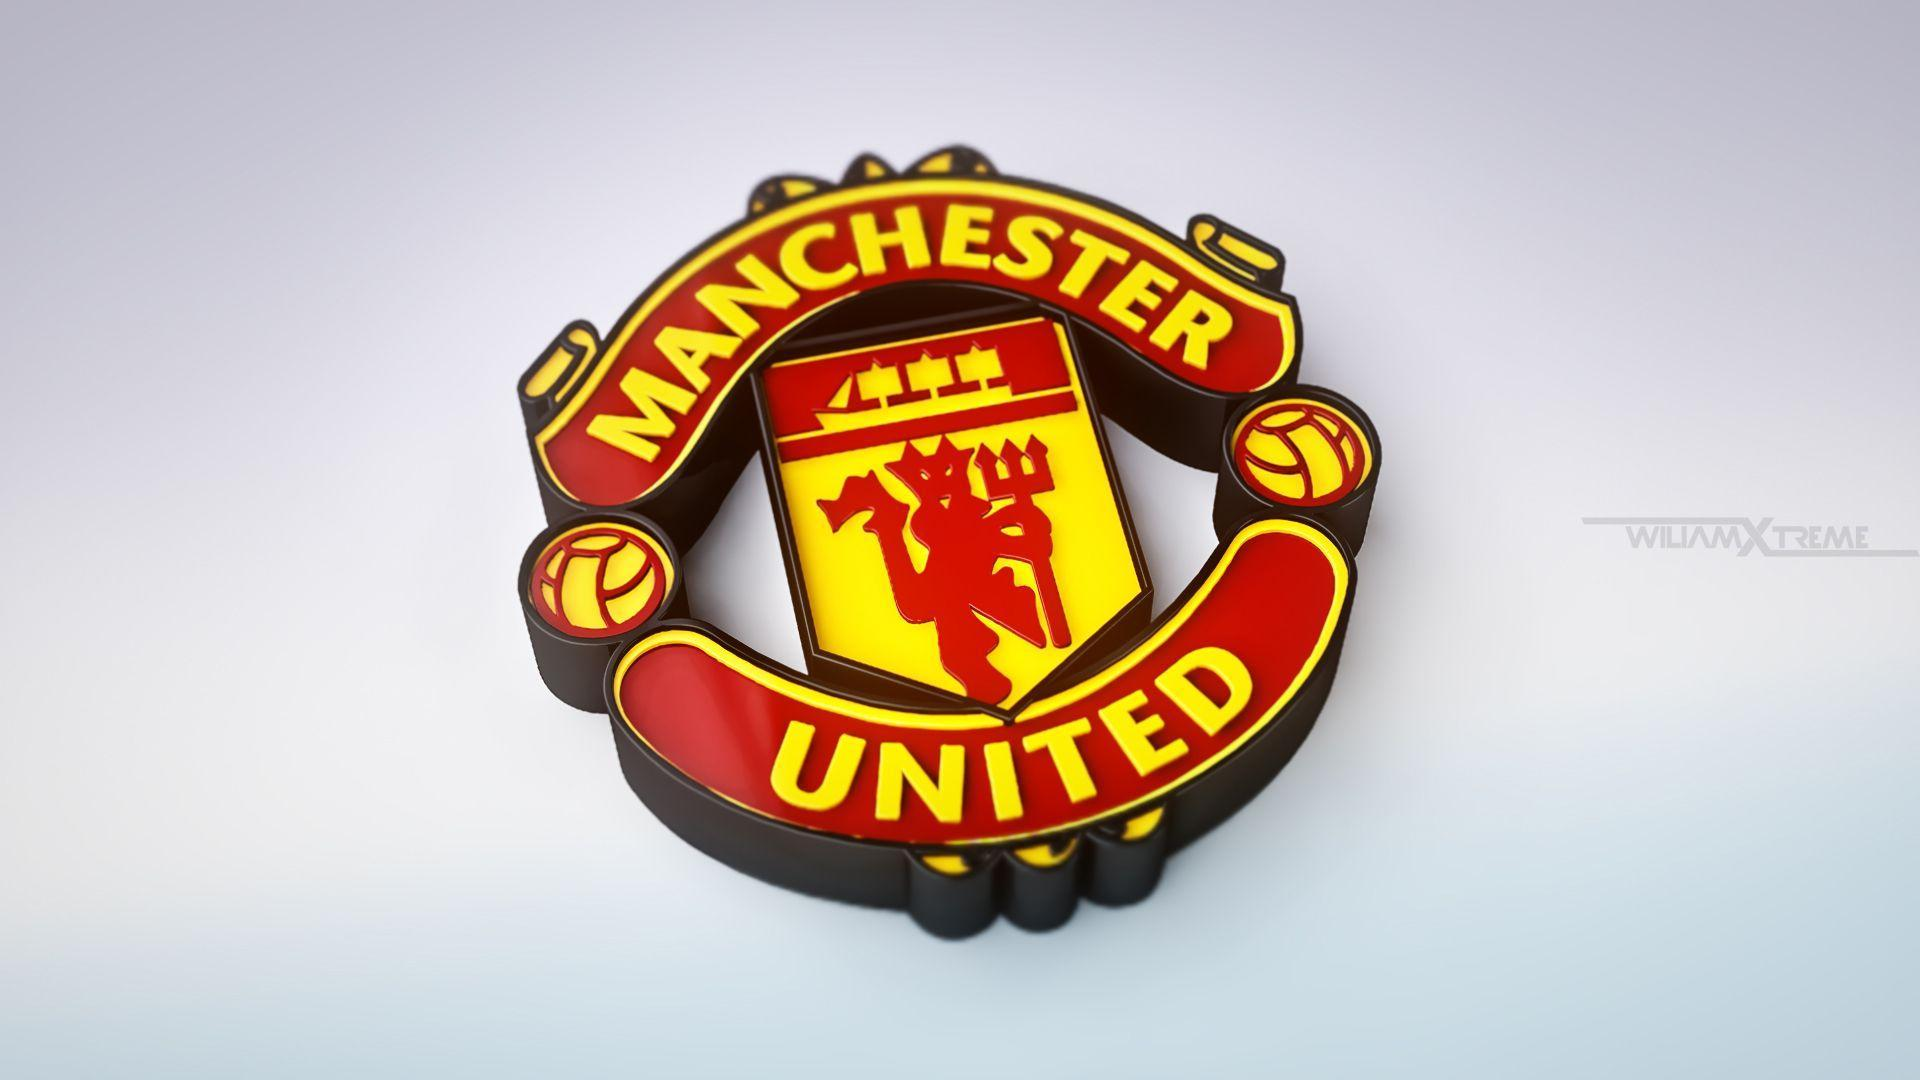 Manchester United 2018 Wallpapers 1920x1080